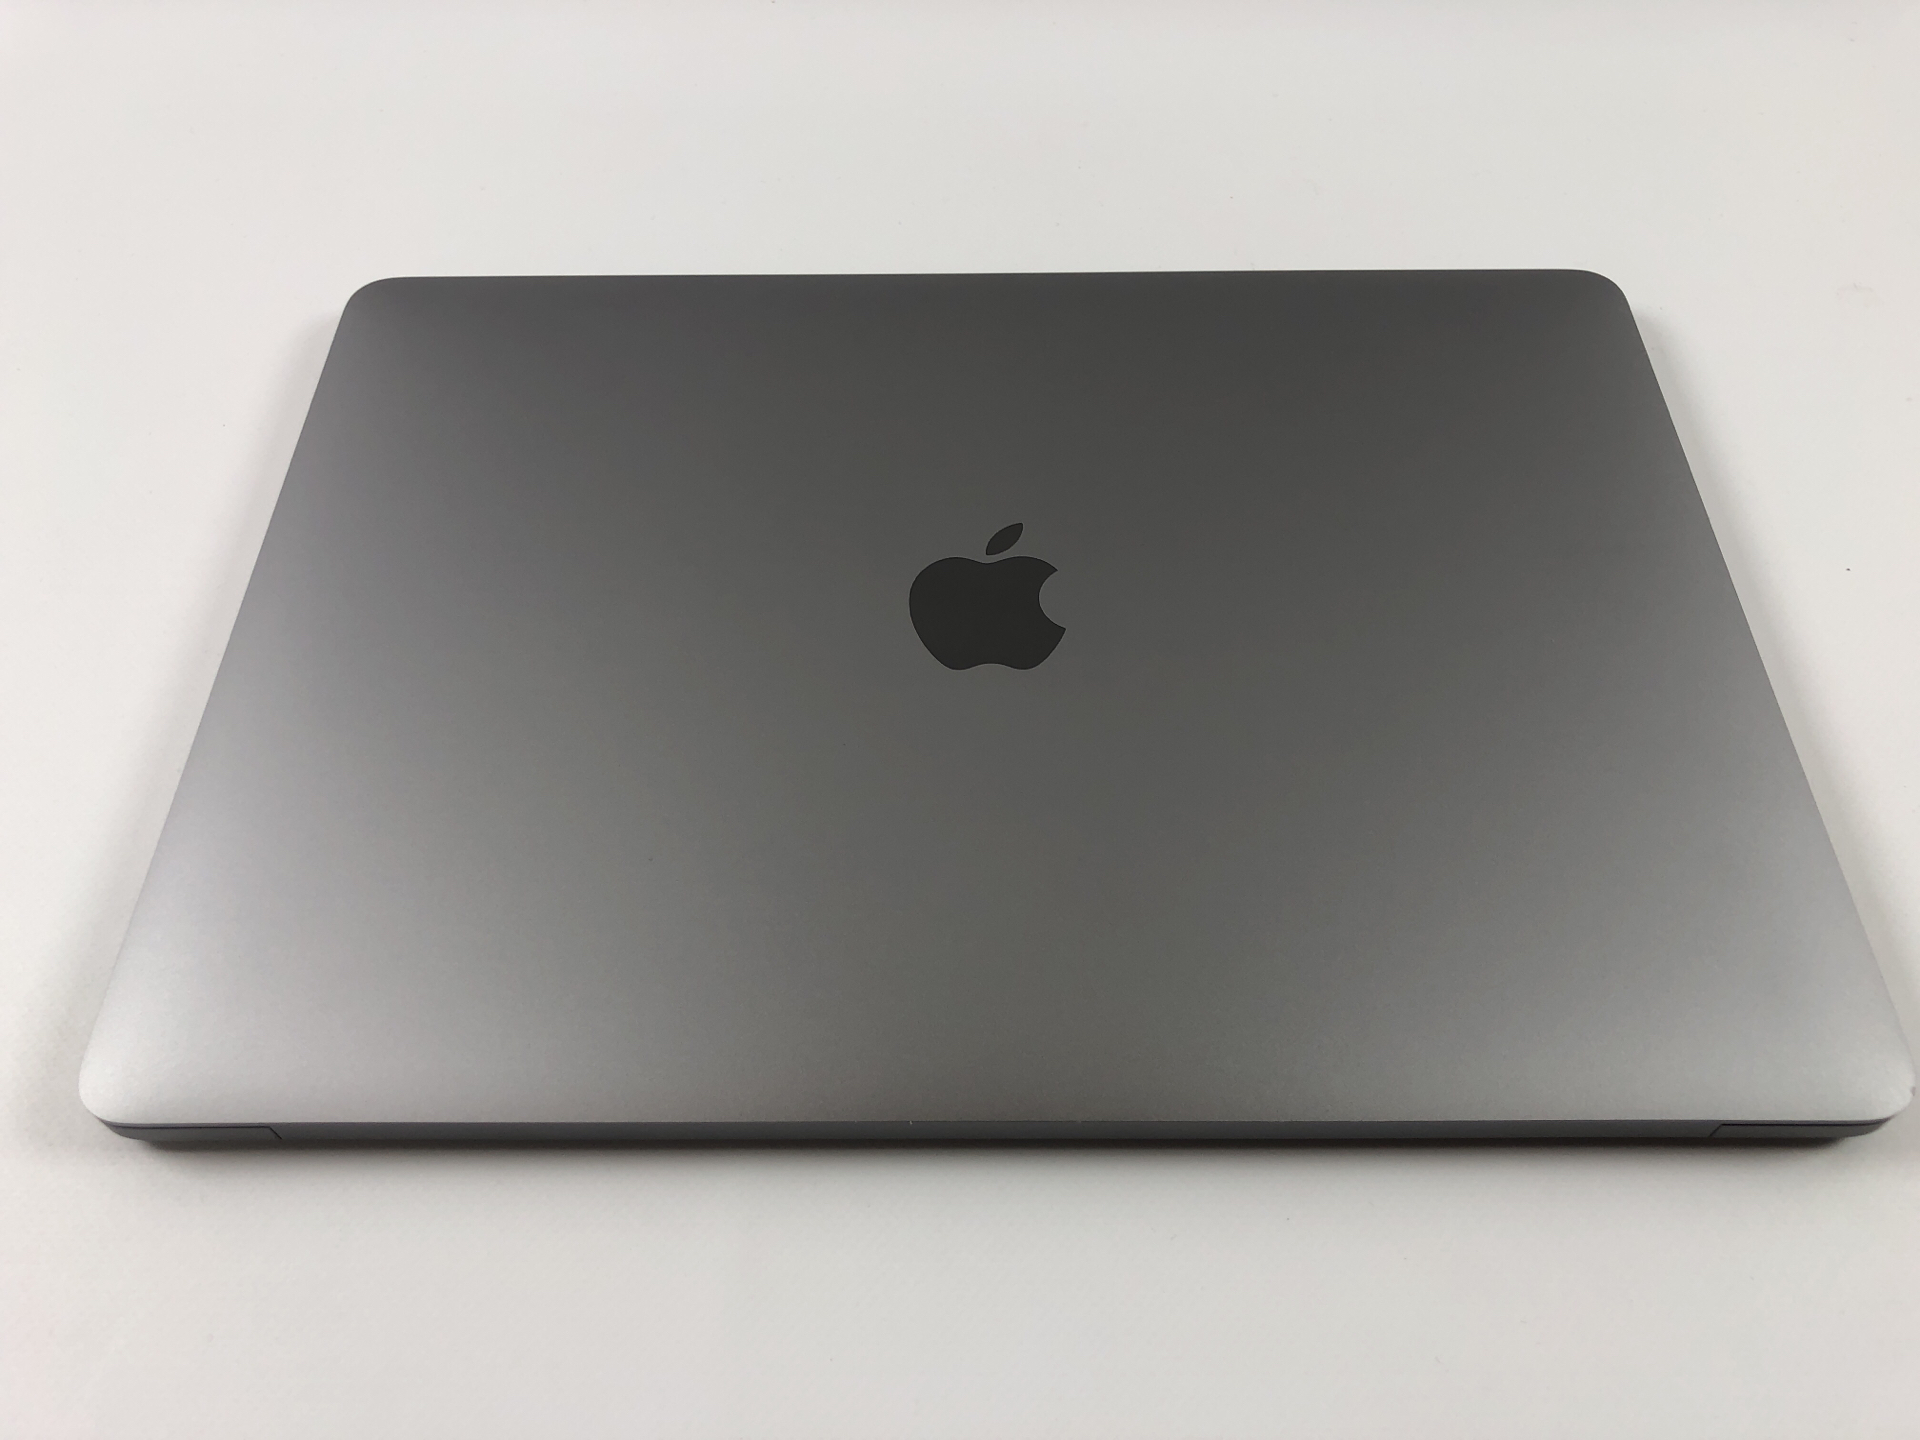 "MacBook Pro 13"" 4TBT Late 2016 (Intel Core i5 2.9 GHz 16 GB RAM 256 GB SSD), Space Gray, Intel Core i5 2.9 GHz, 16 GB RAM, 256 GB SSD, Kuva 2"